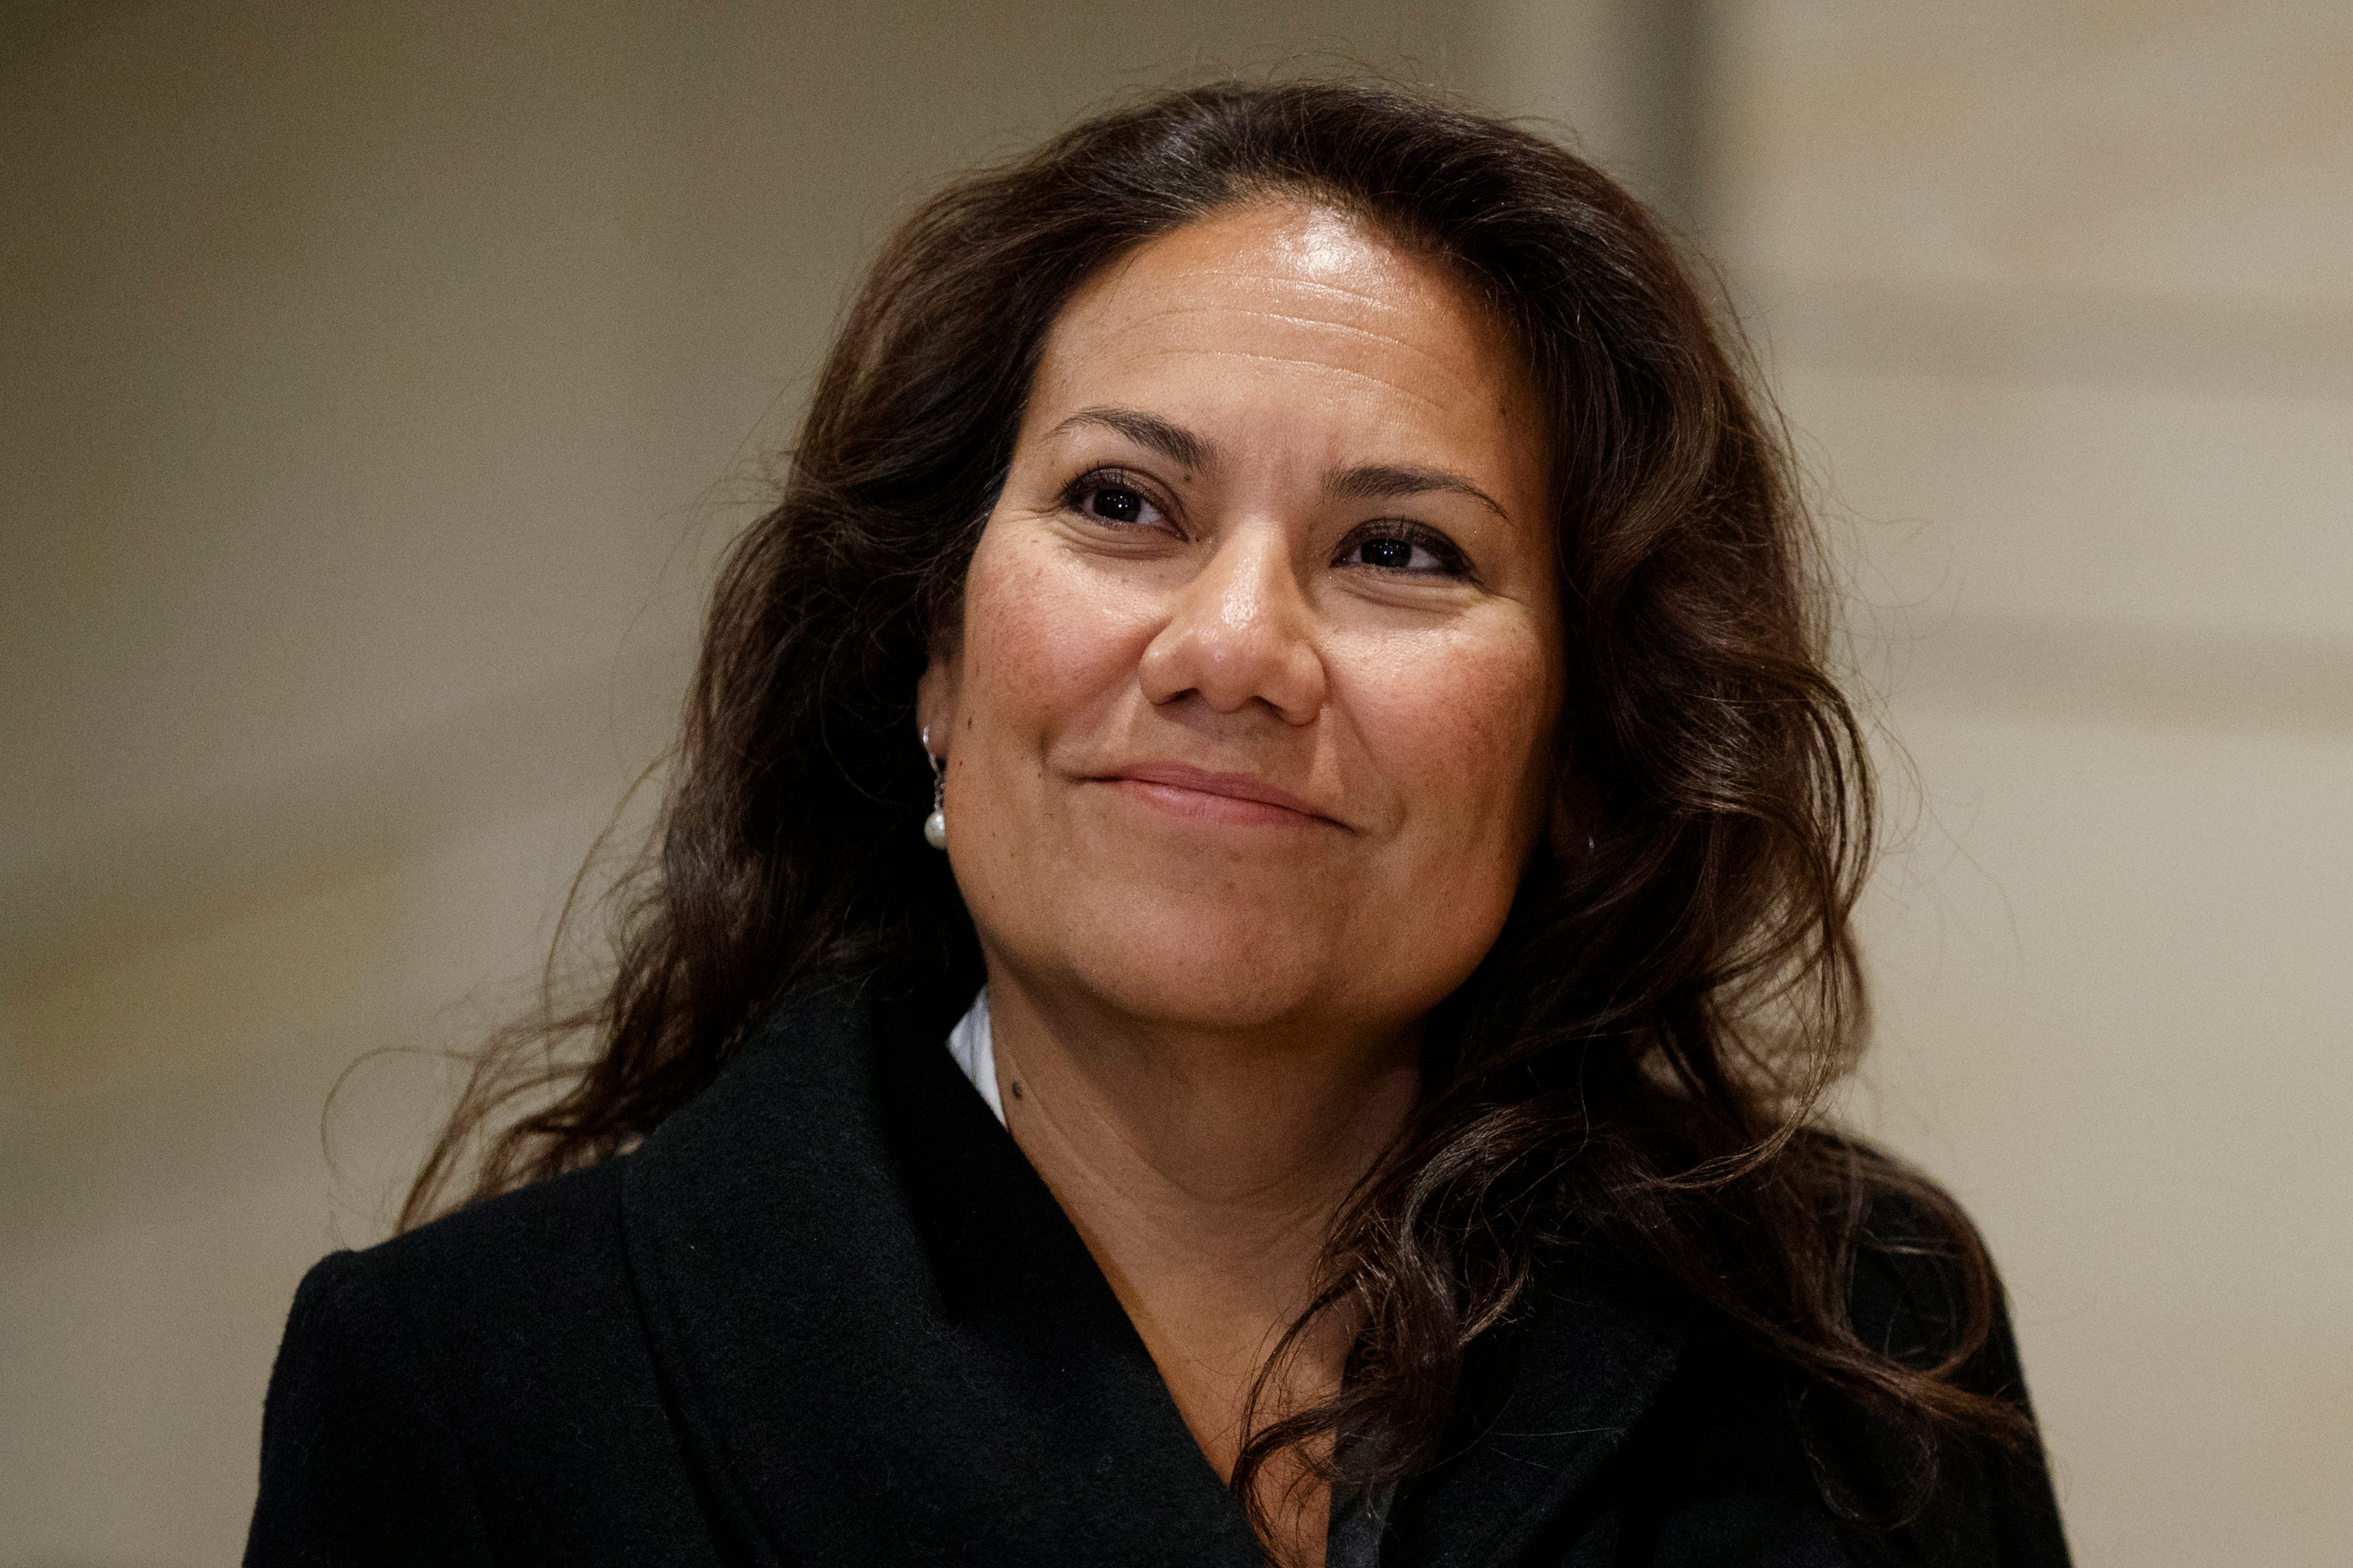 House Democrats eager to rebuild government as they take majority in January | El Paso Times